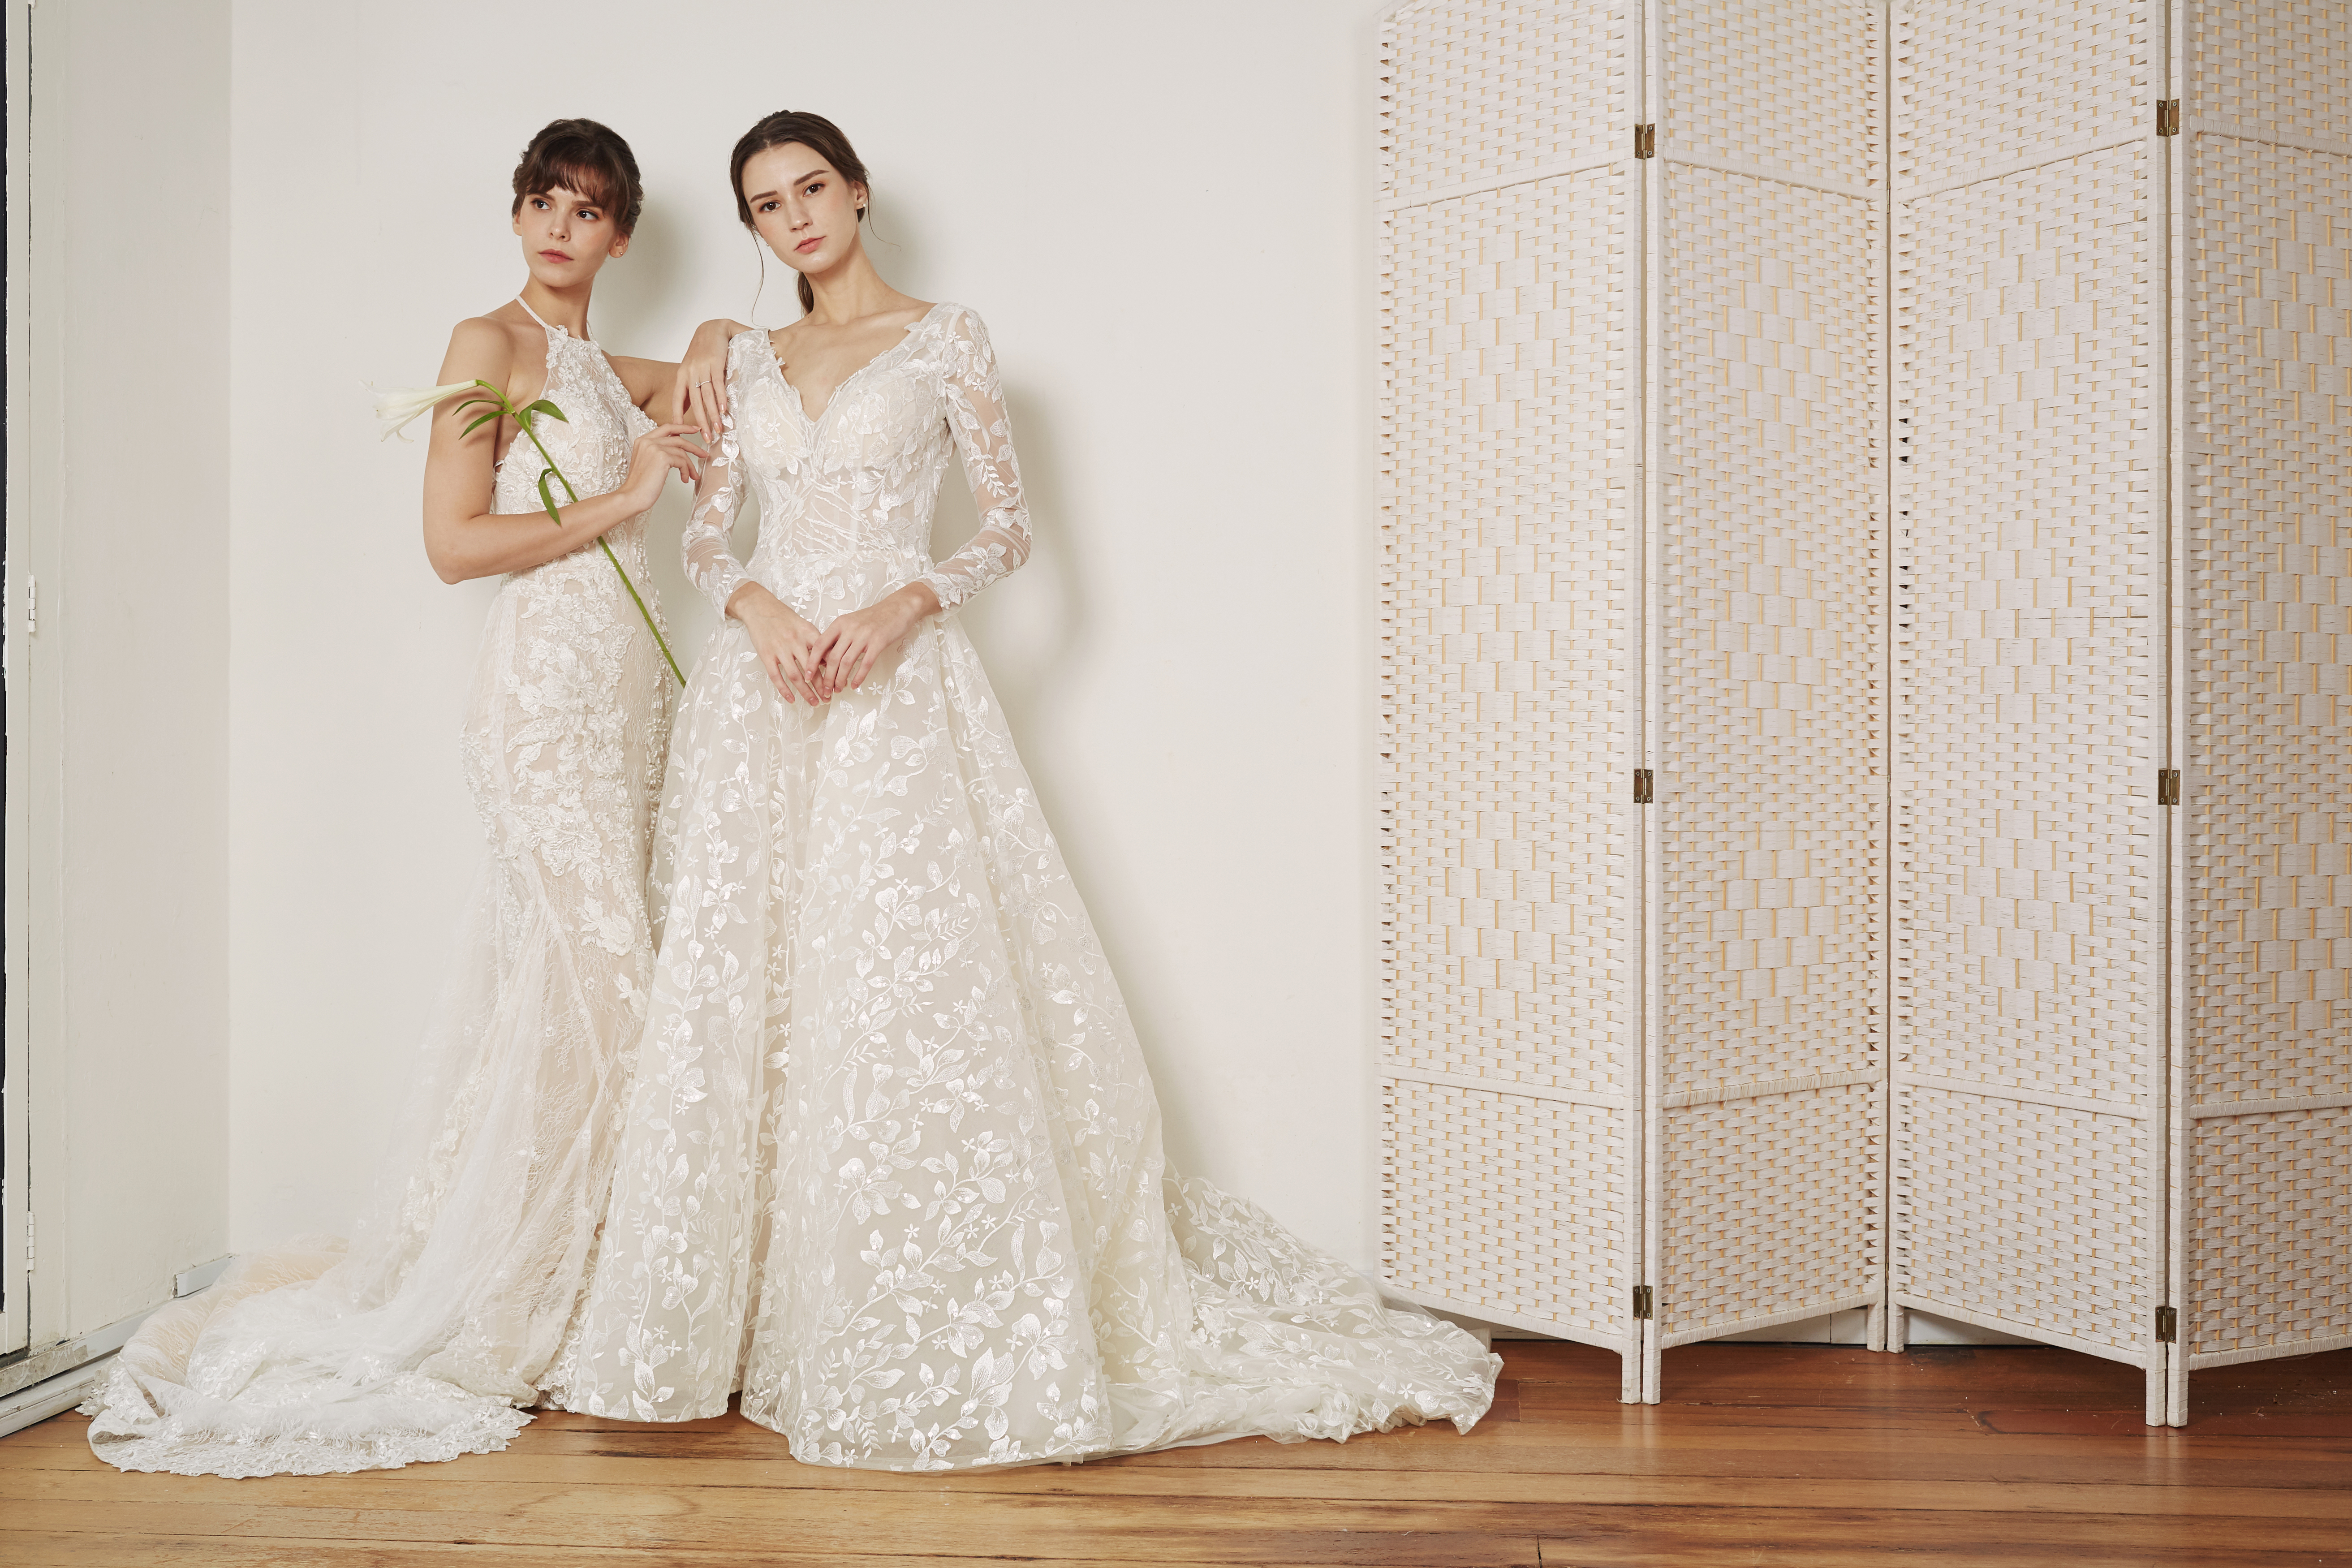 <p>A bridal gown specialist store with a huge varietyof latest trend wedding gown designs providing a holistic andlifestyle experience when bride shops for her dream dress.</p>